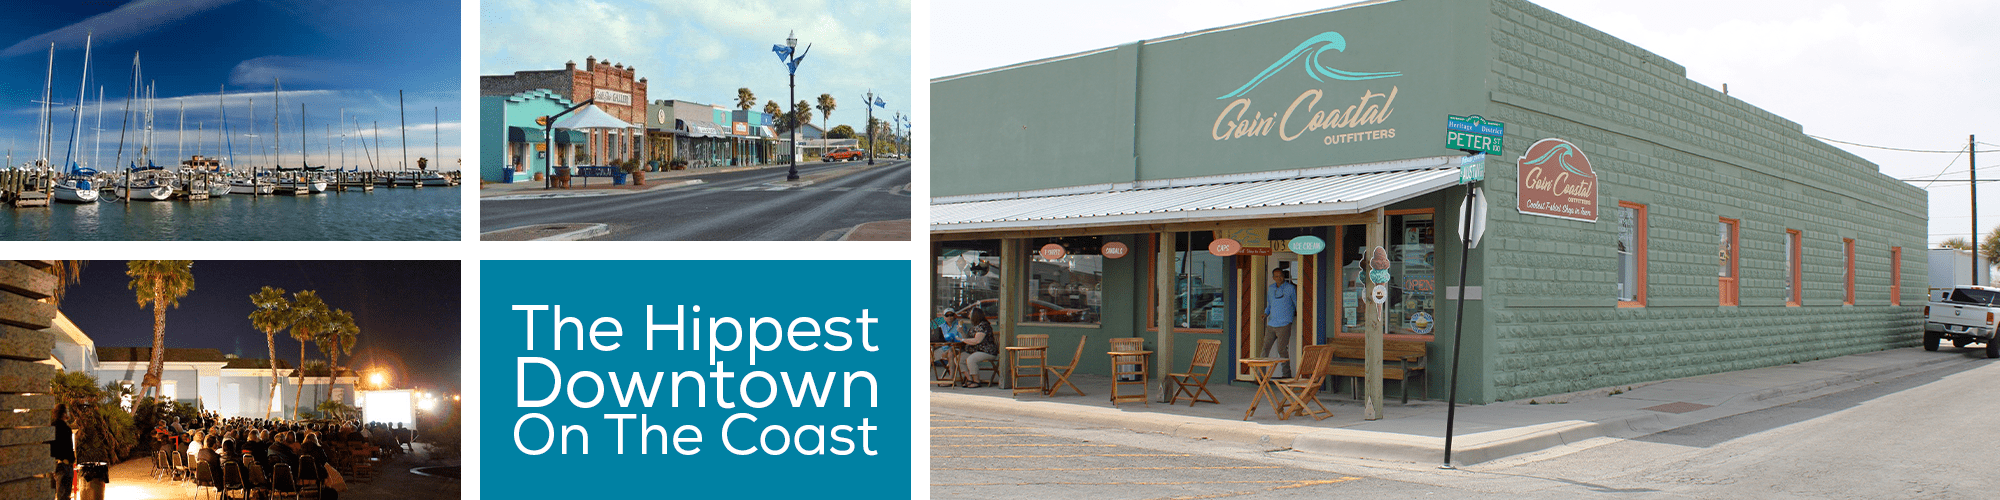 THE HIPPEST DOWNTOWN ON THE COAST!